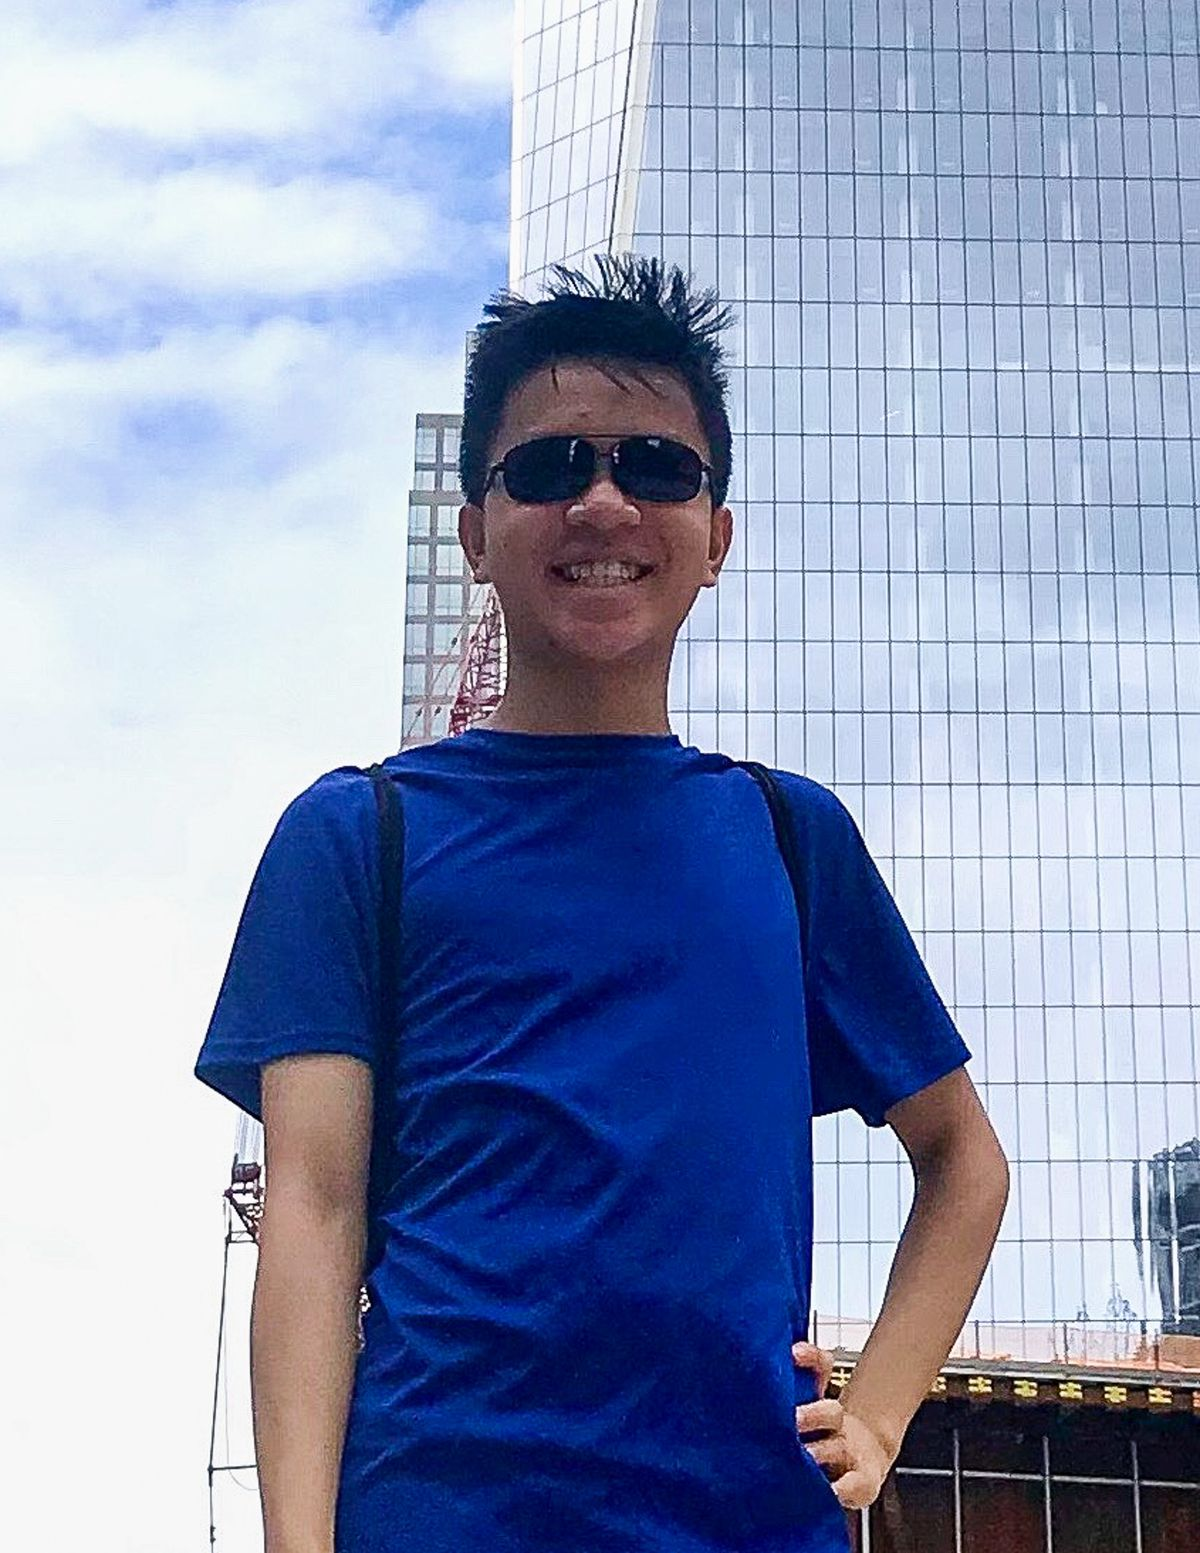 A young man wearing a blue shirt and sunglasses poses for a portrait, in front of skyscrapers in New York City.